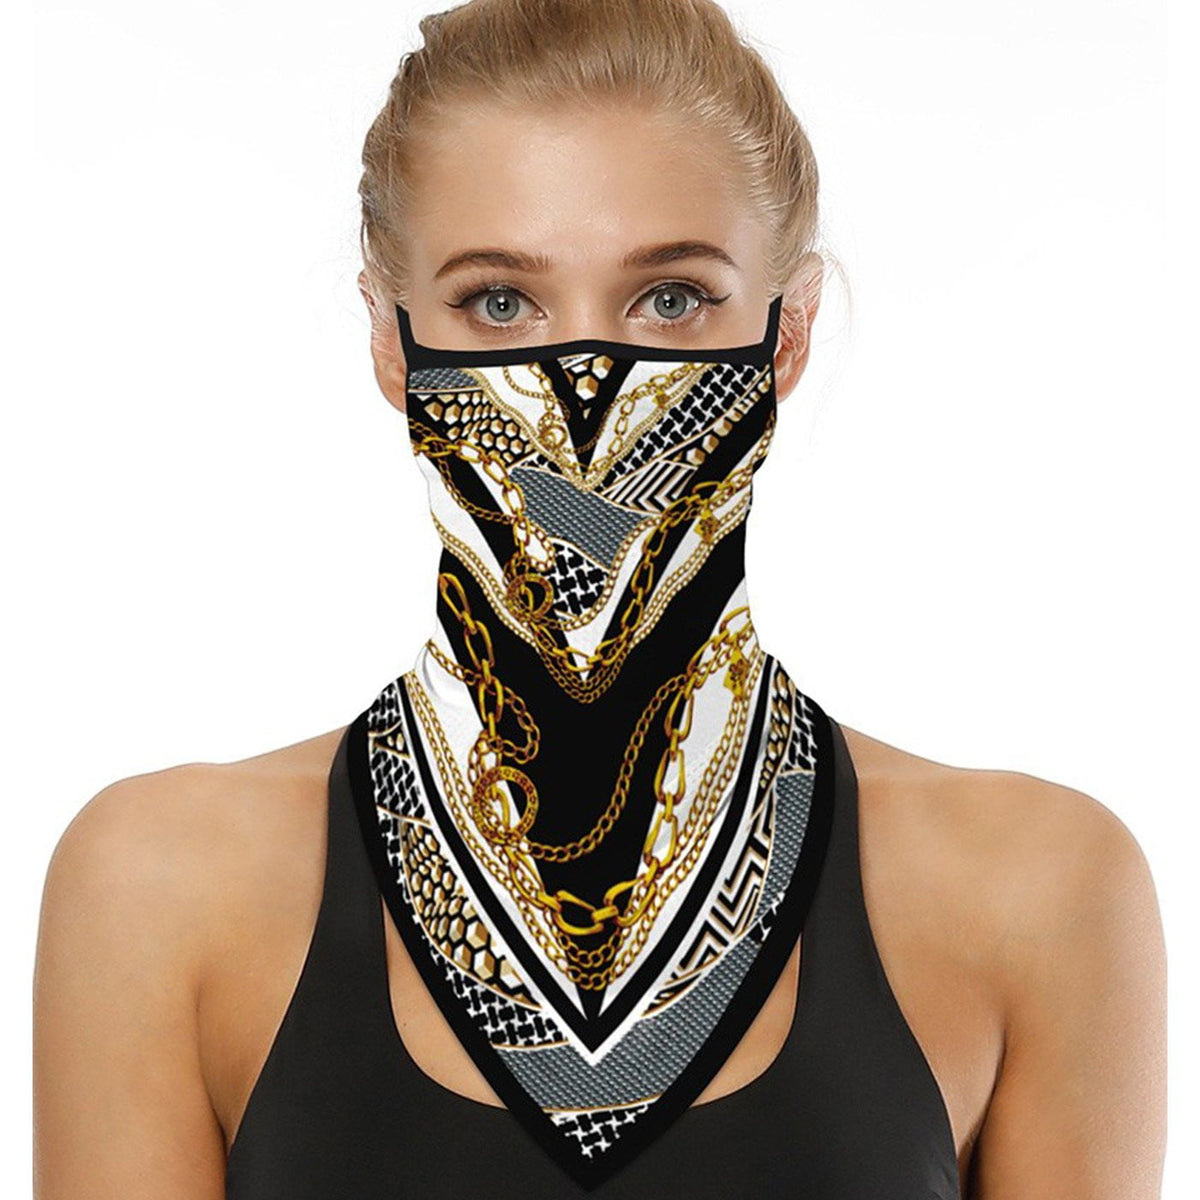 Gold Chain Neck Gaiter - MaskJunkee